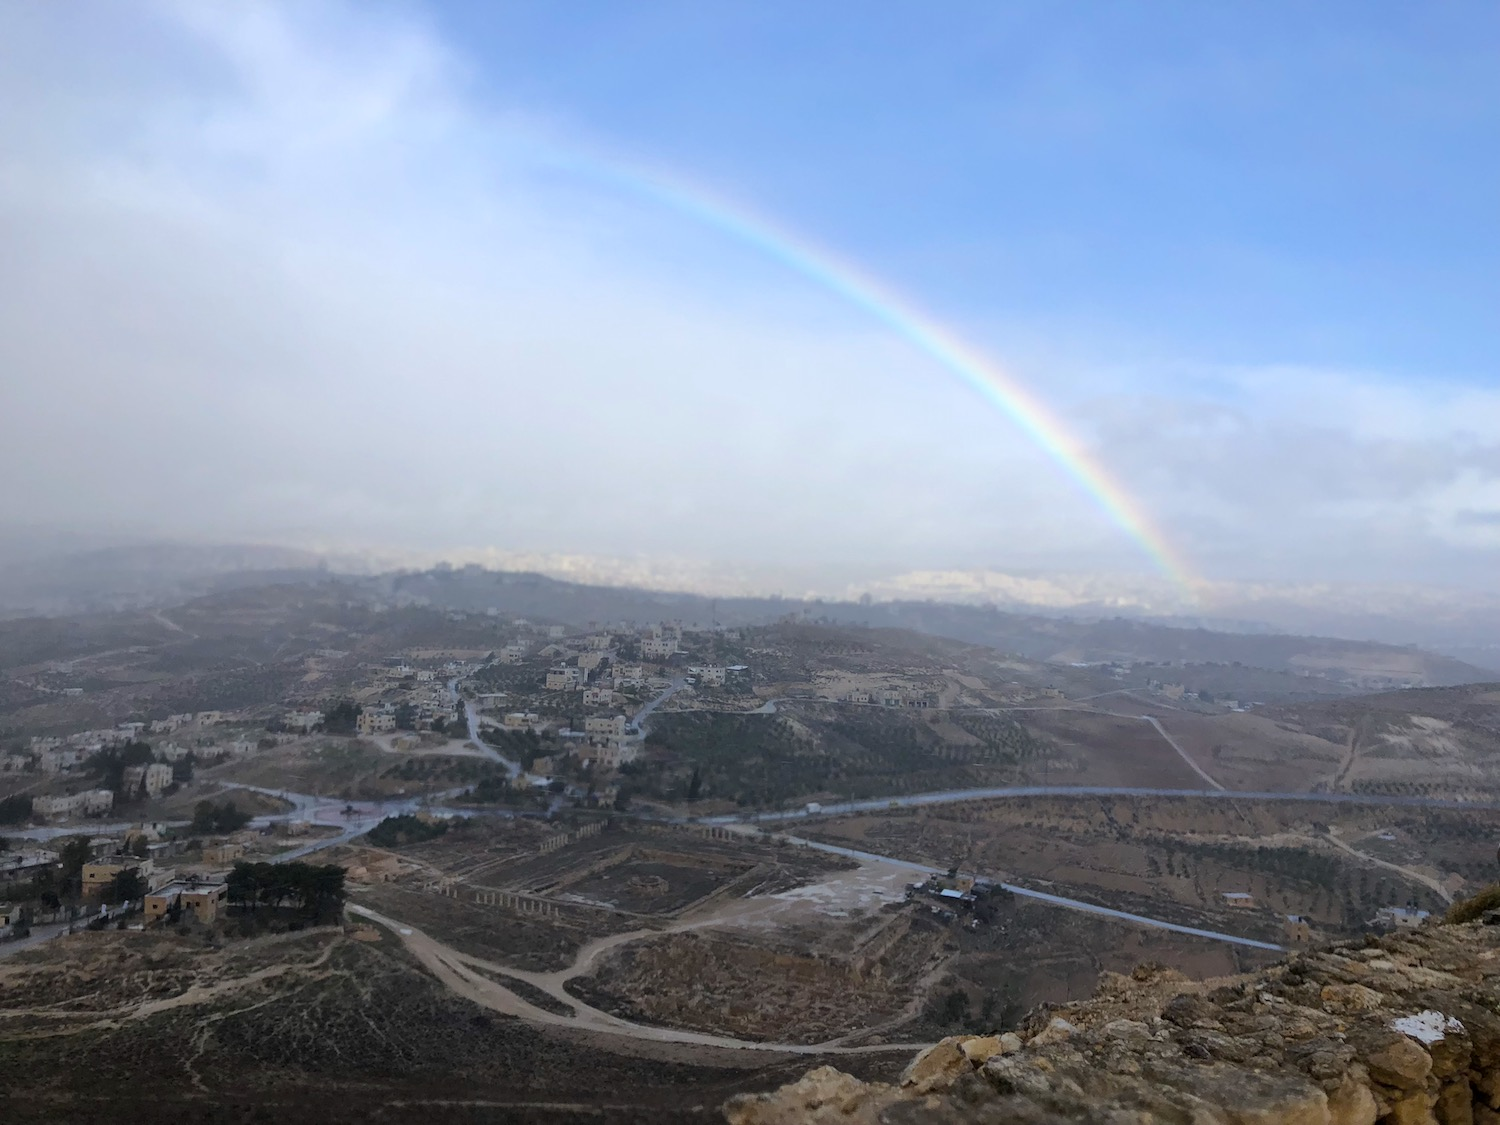 Fierce rain was followed by sun. The exchange created a rainbow over Bethlehem. Photo by Bible Land Explorer Jay Hess.